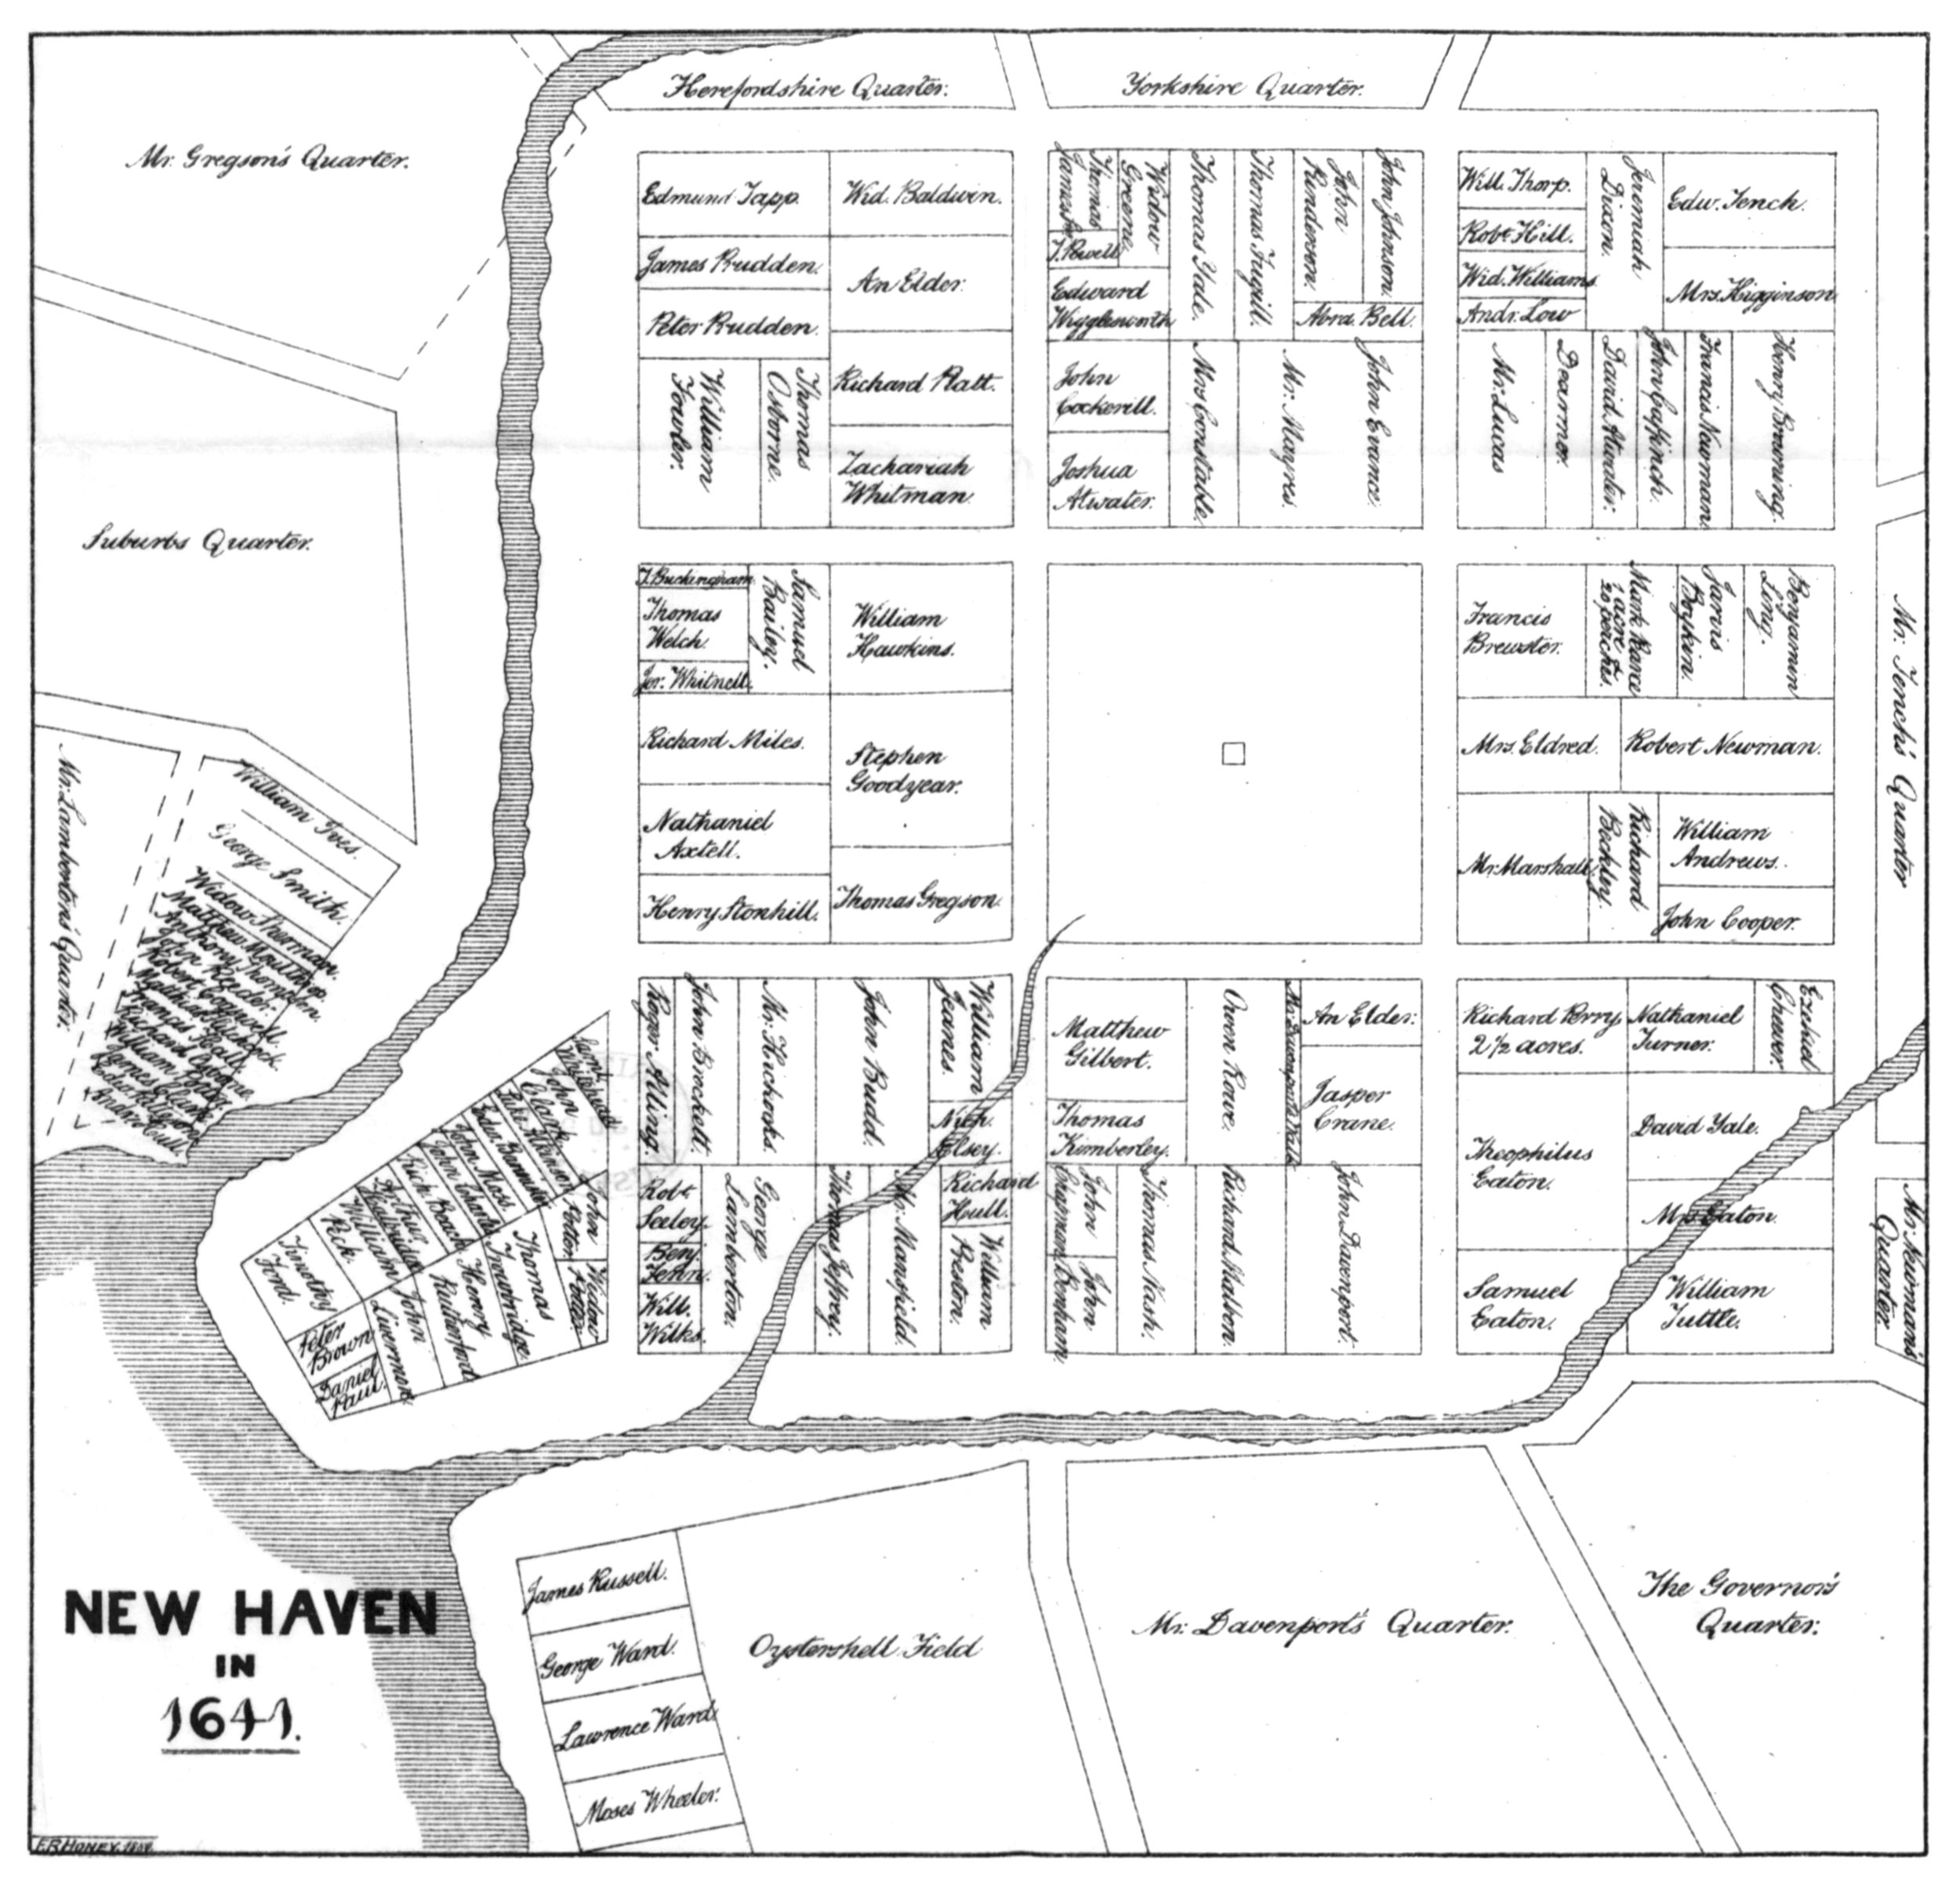 The Atwater map (1881) of New Haven in 1641.